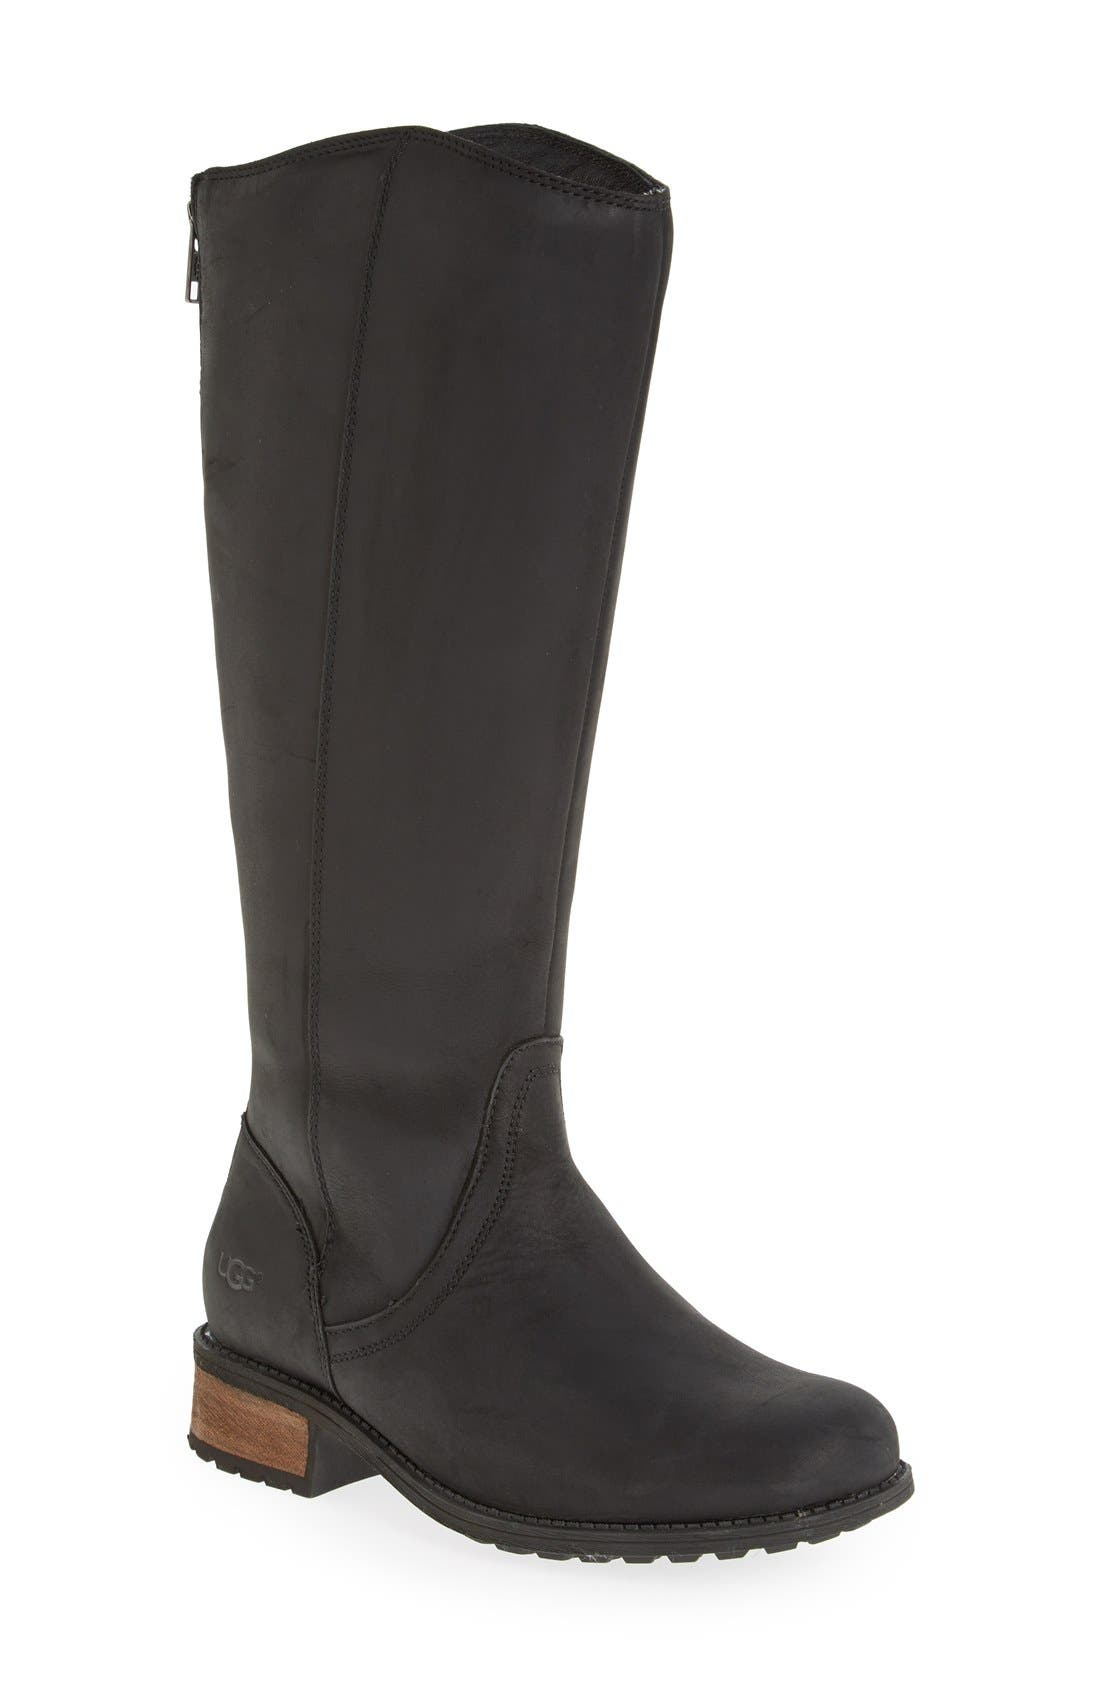 Alternate Image 1 Selected - UGG® Australia 'Seldon' Water Resistant Boot (Women)